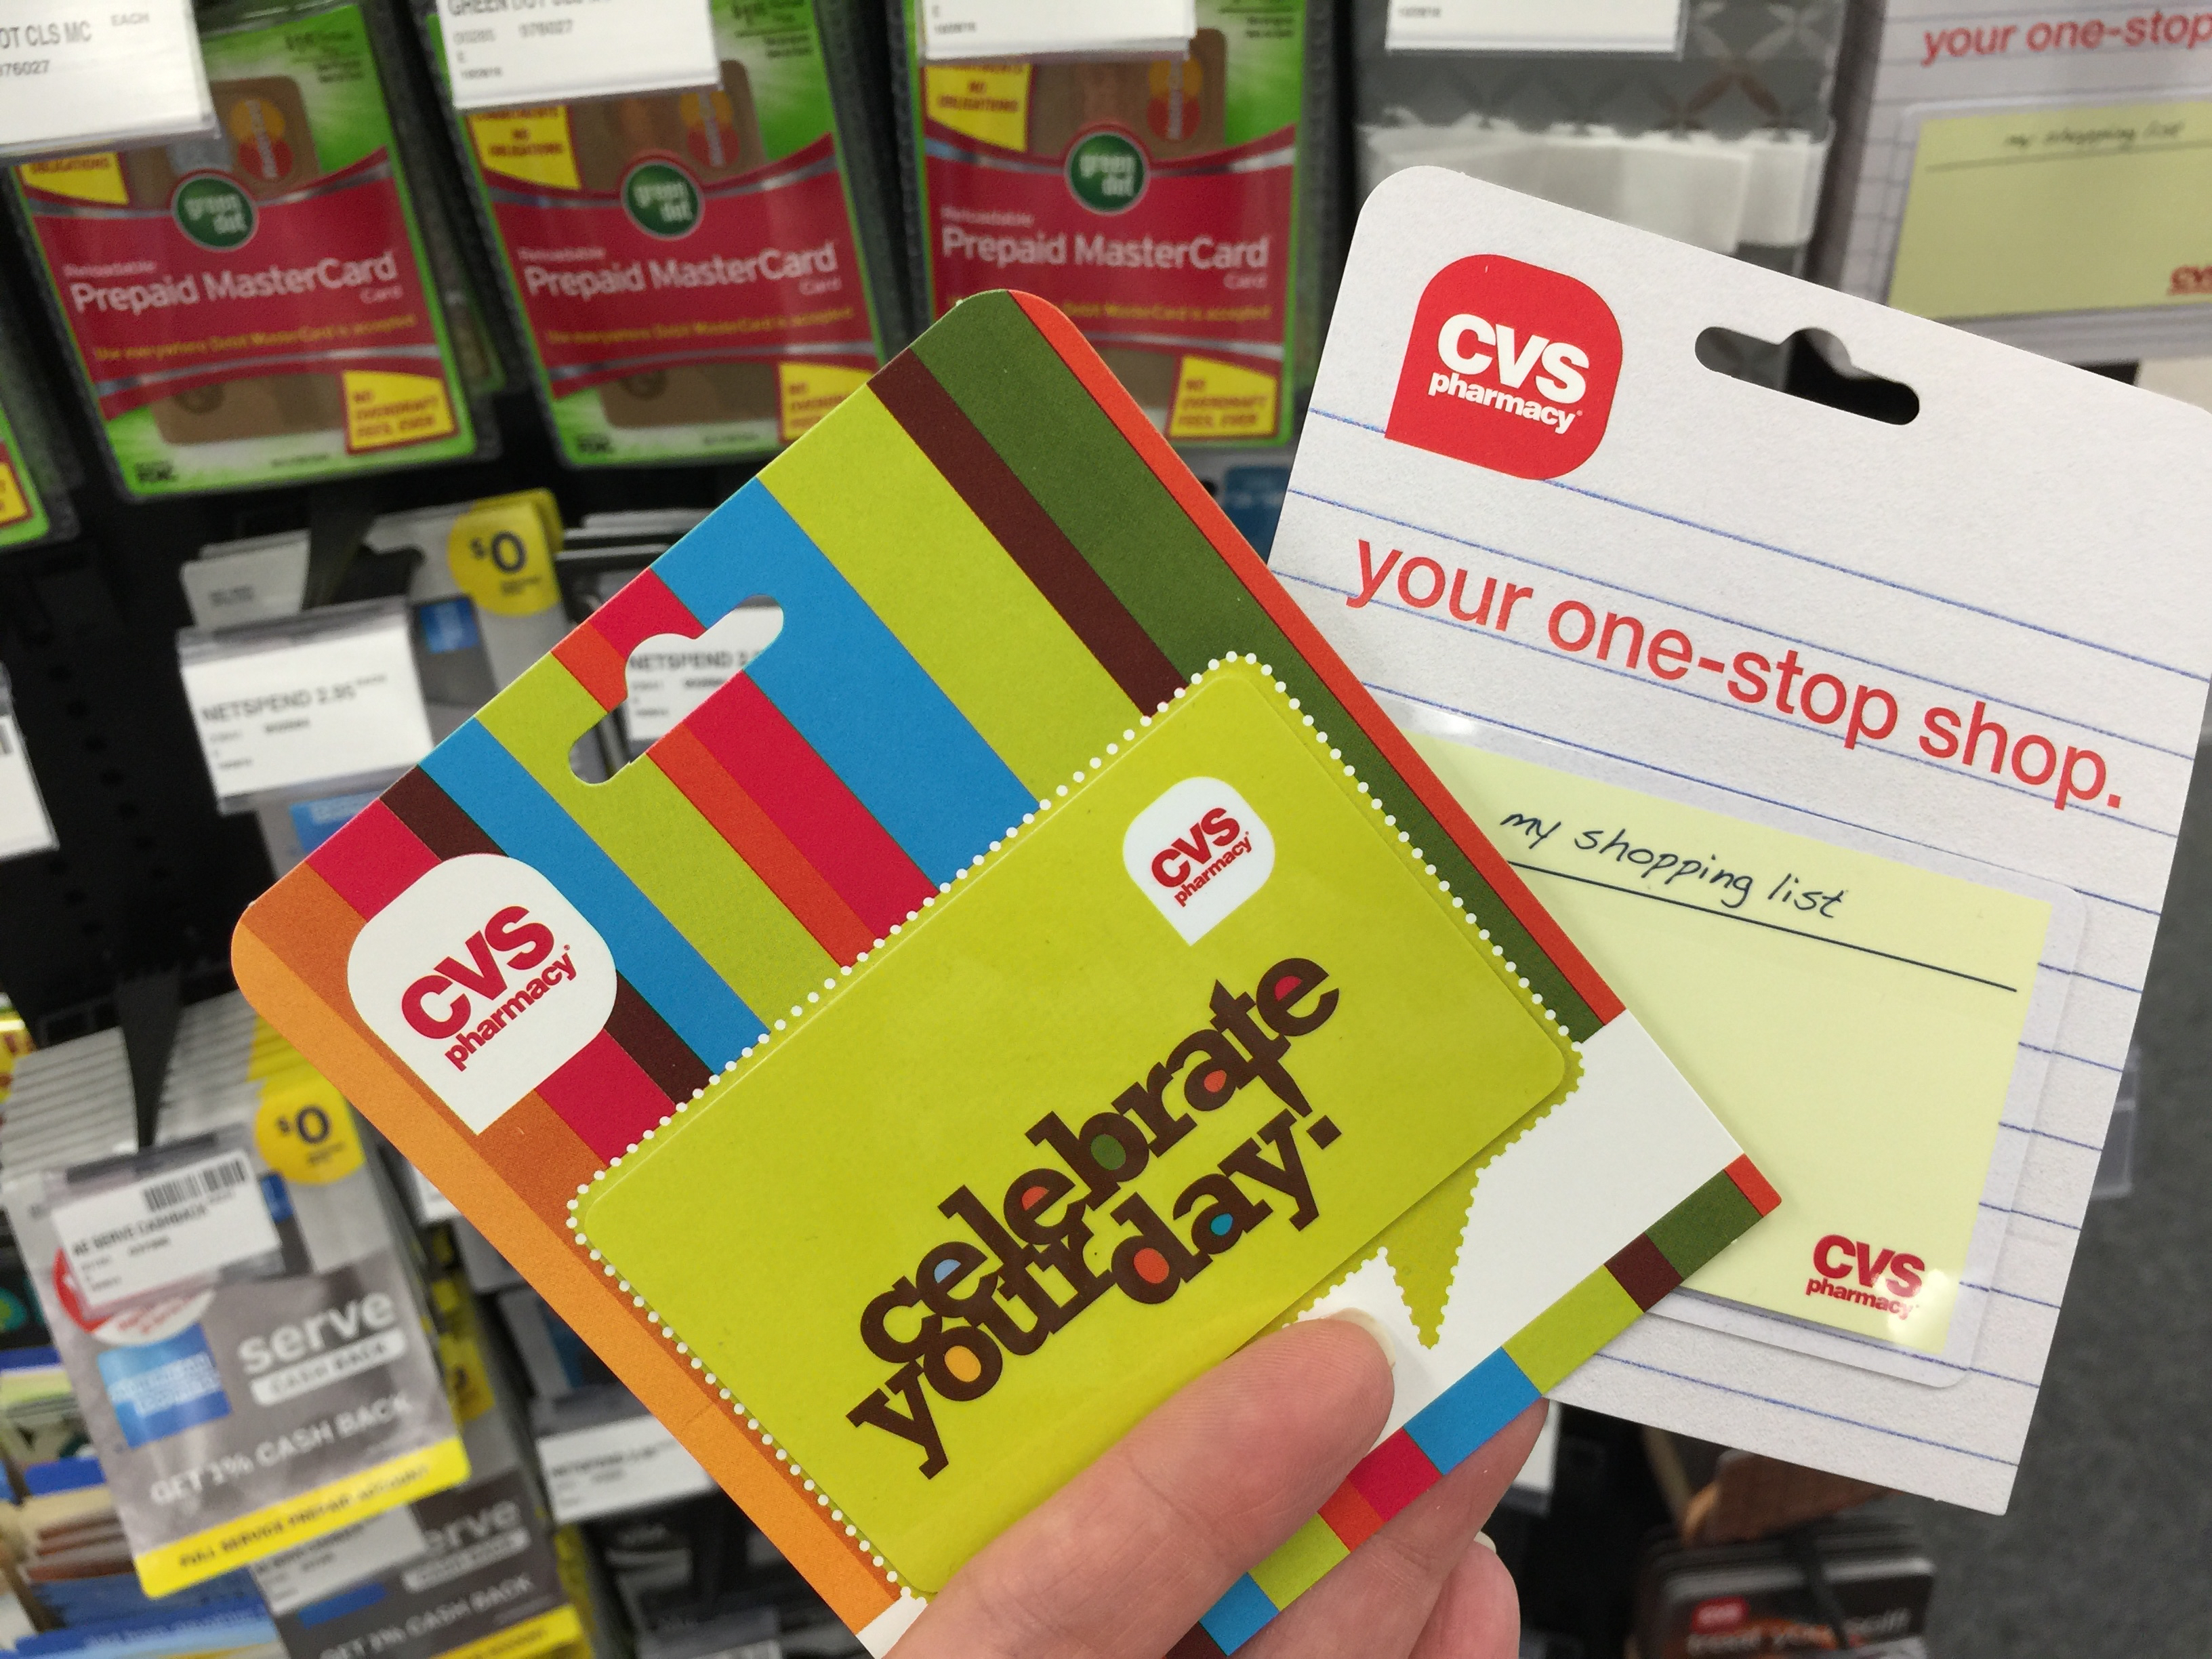 23 Money Saving Tips You May Not Know About Shopping At Cvspharmacy